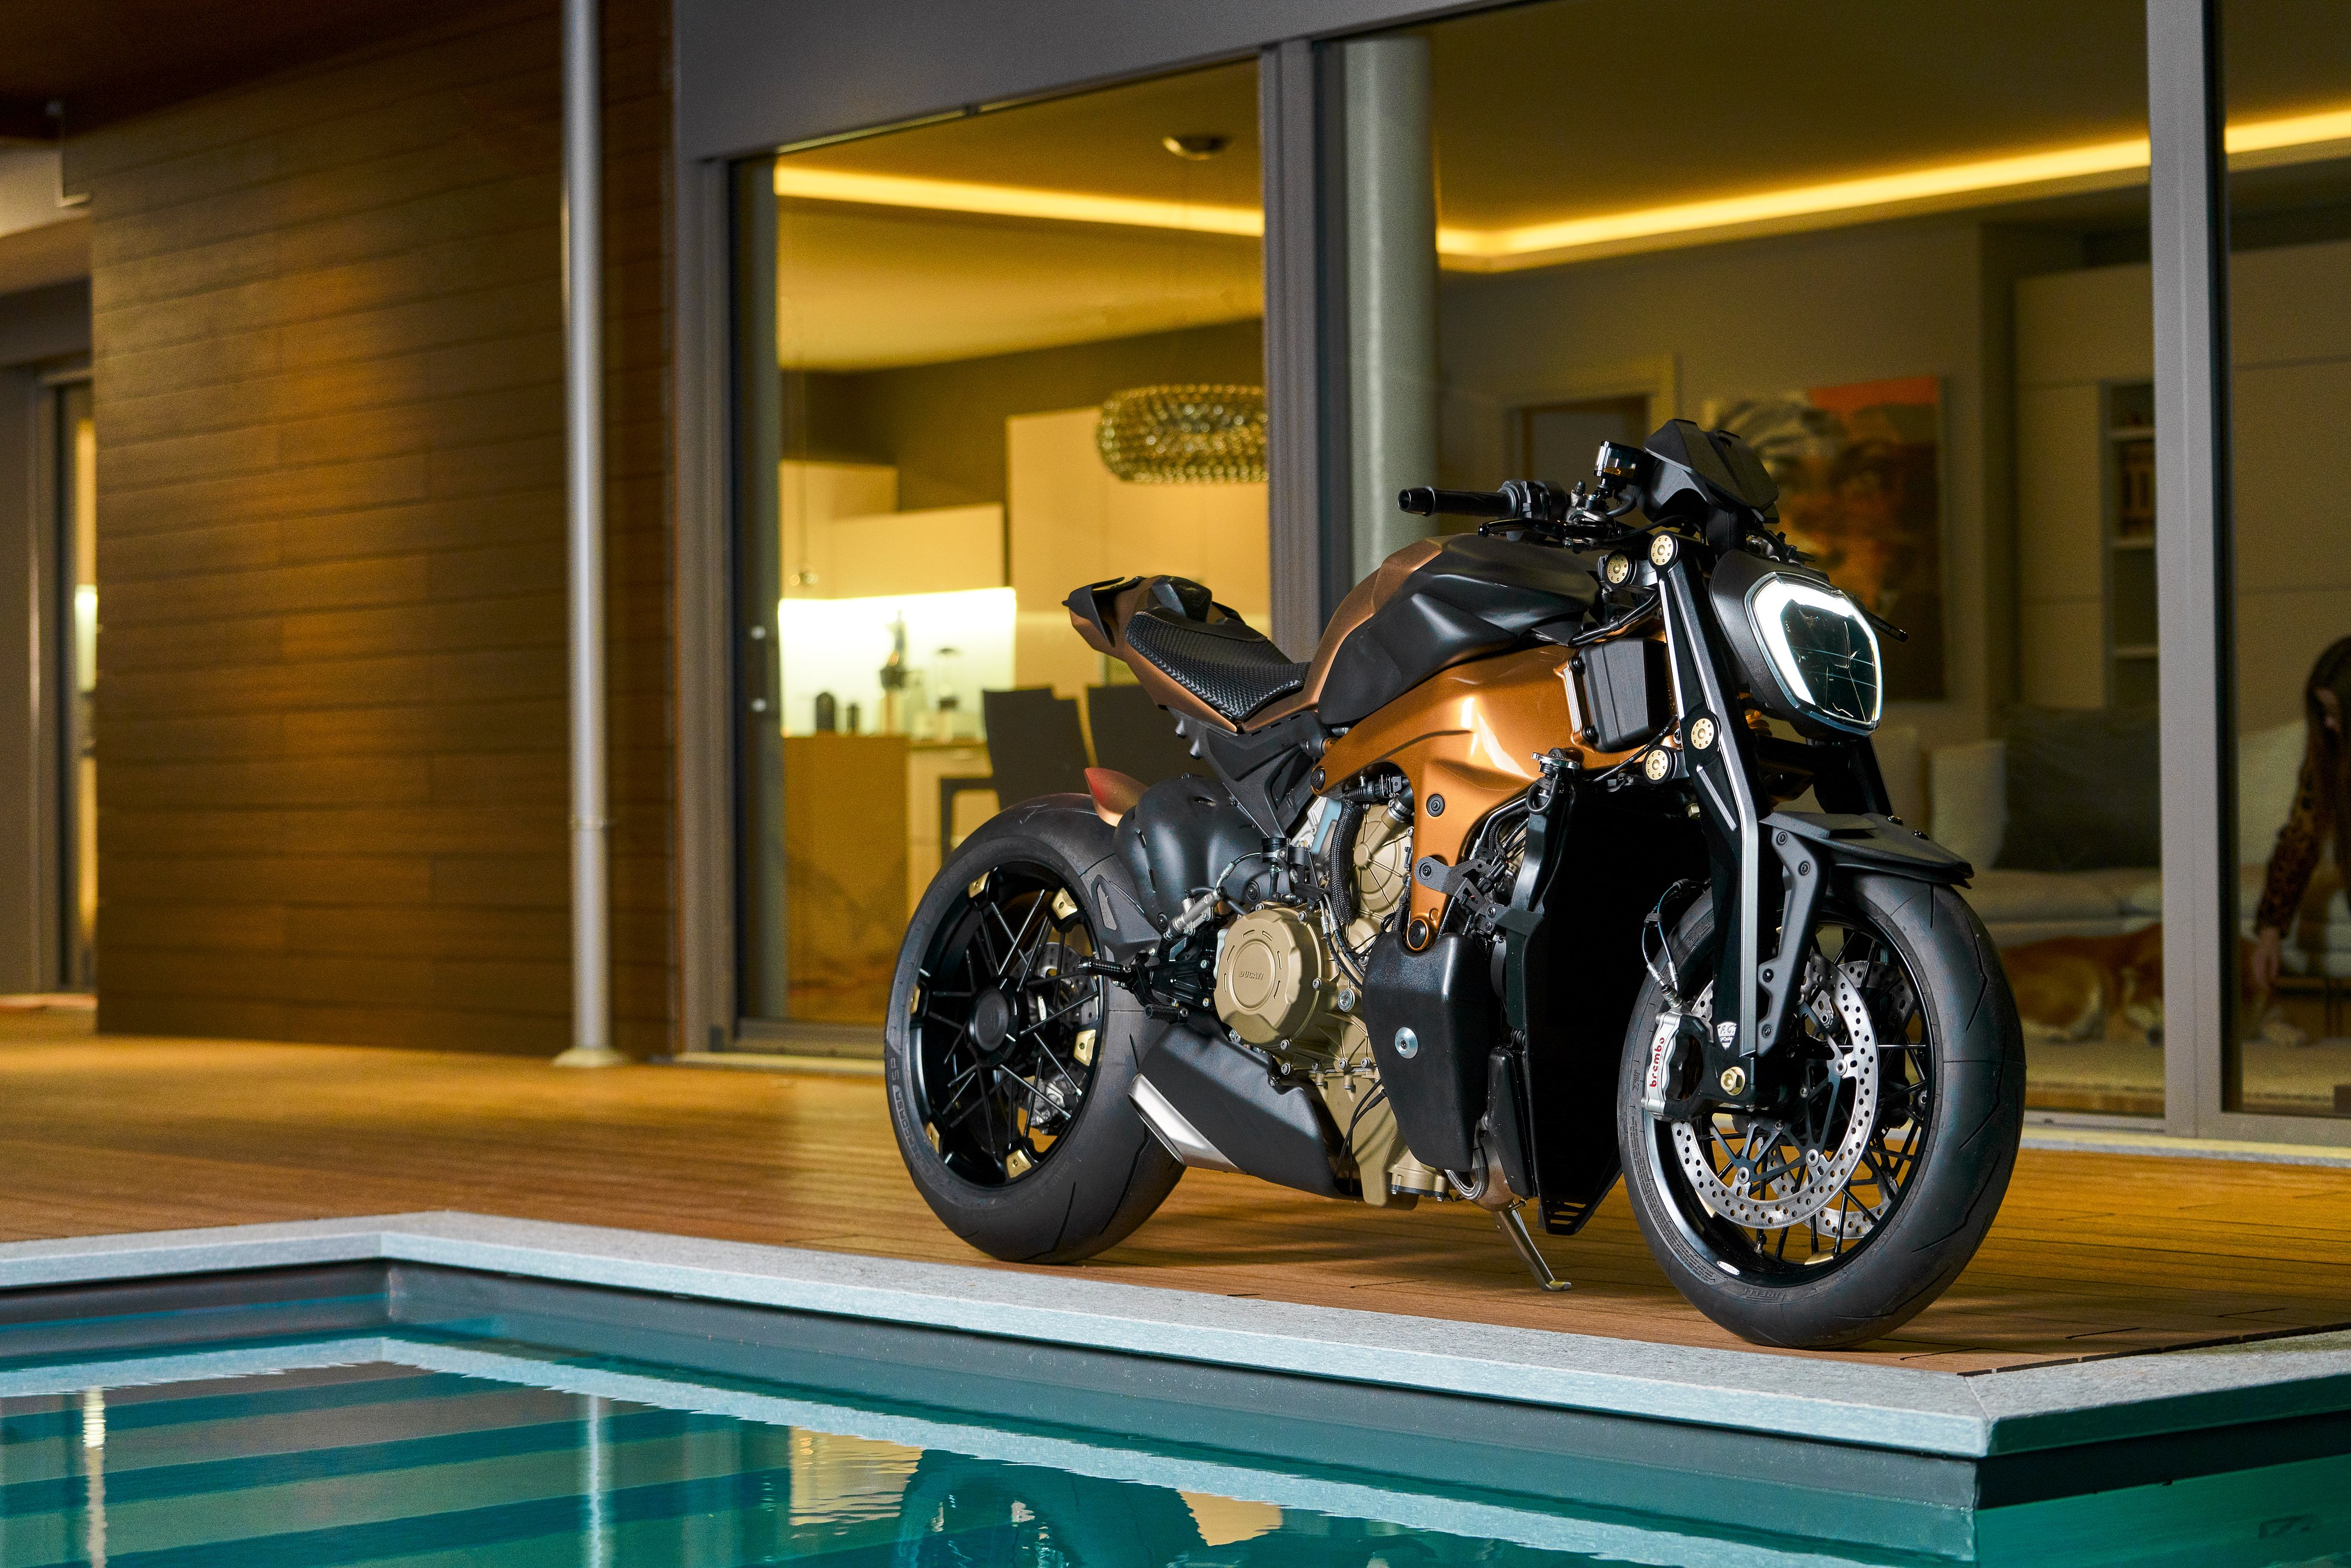 How would you define your style? It looks very different from what we usually see on motorcycle fairs.